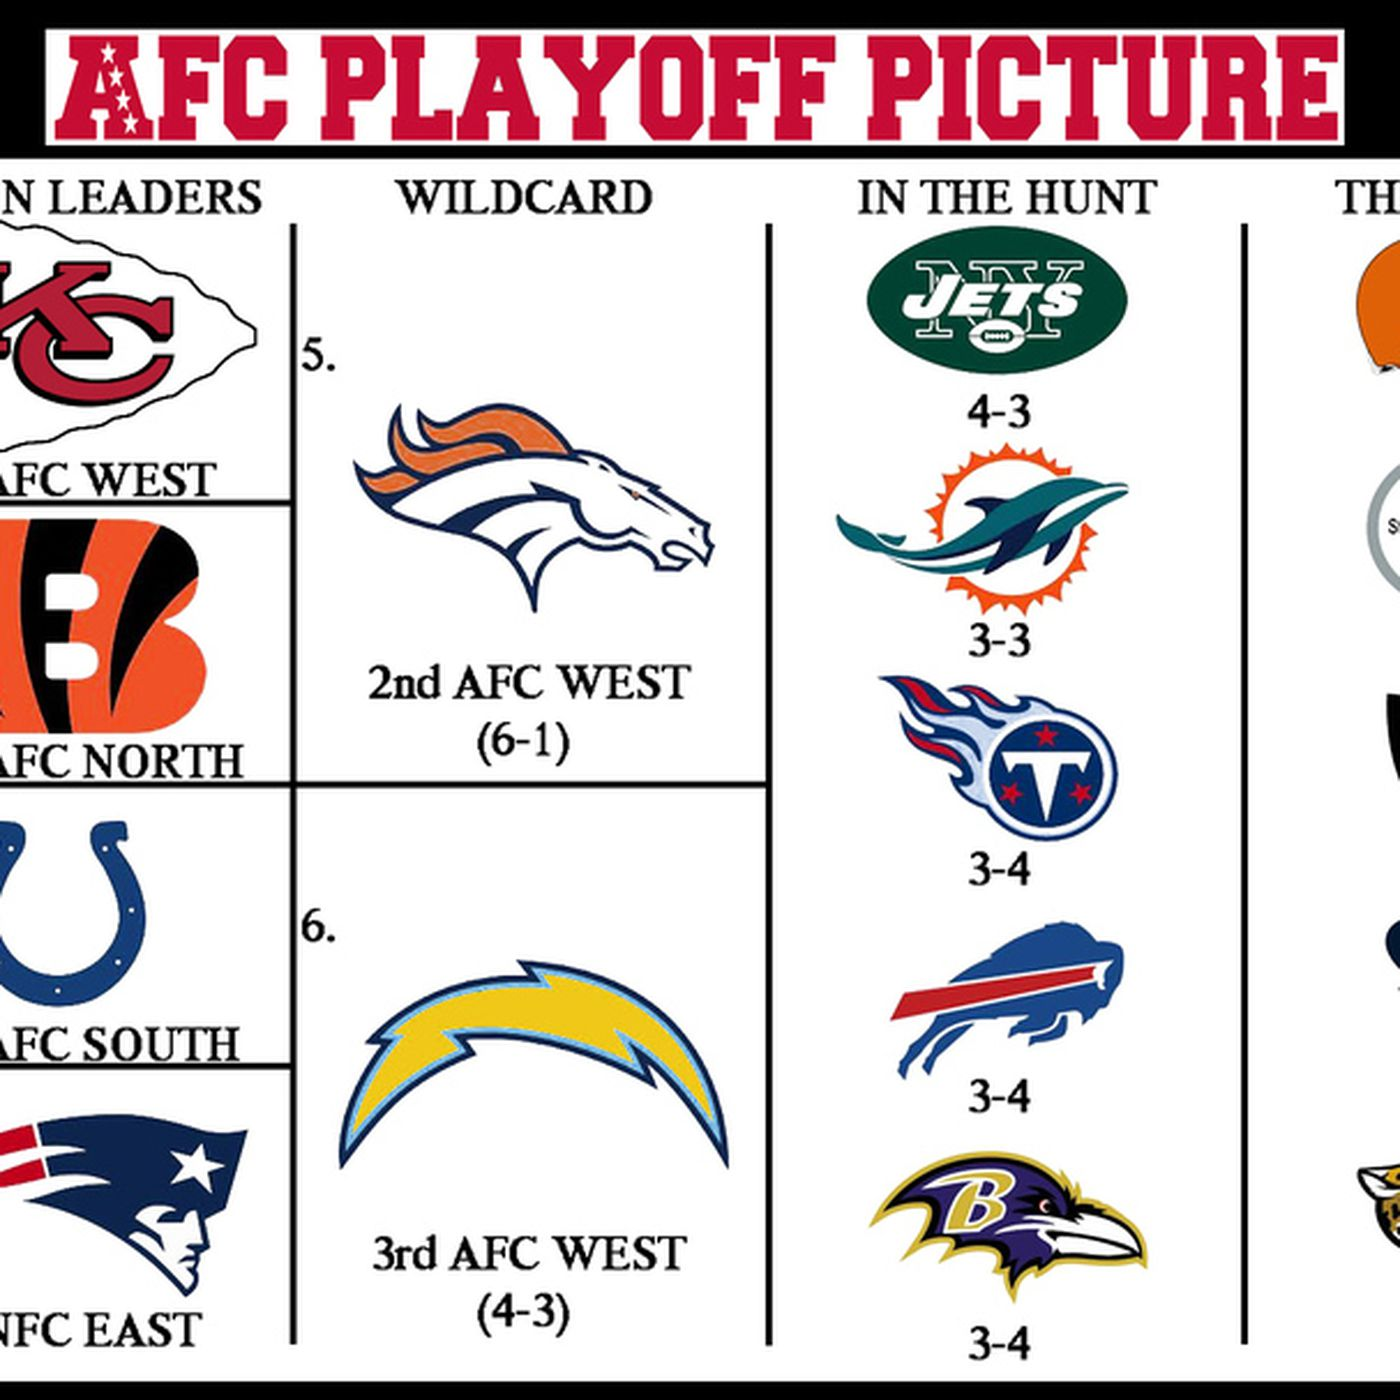 2013 Nfl Playoff Picture Afc Strength Of Schedule Canal Street Chronicles